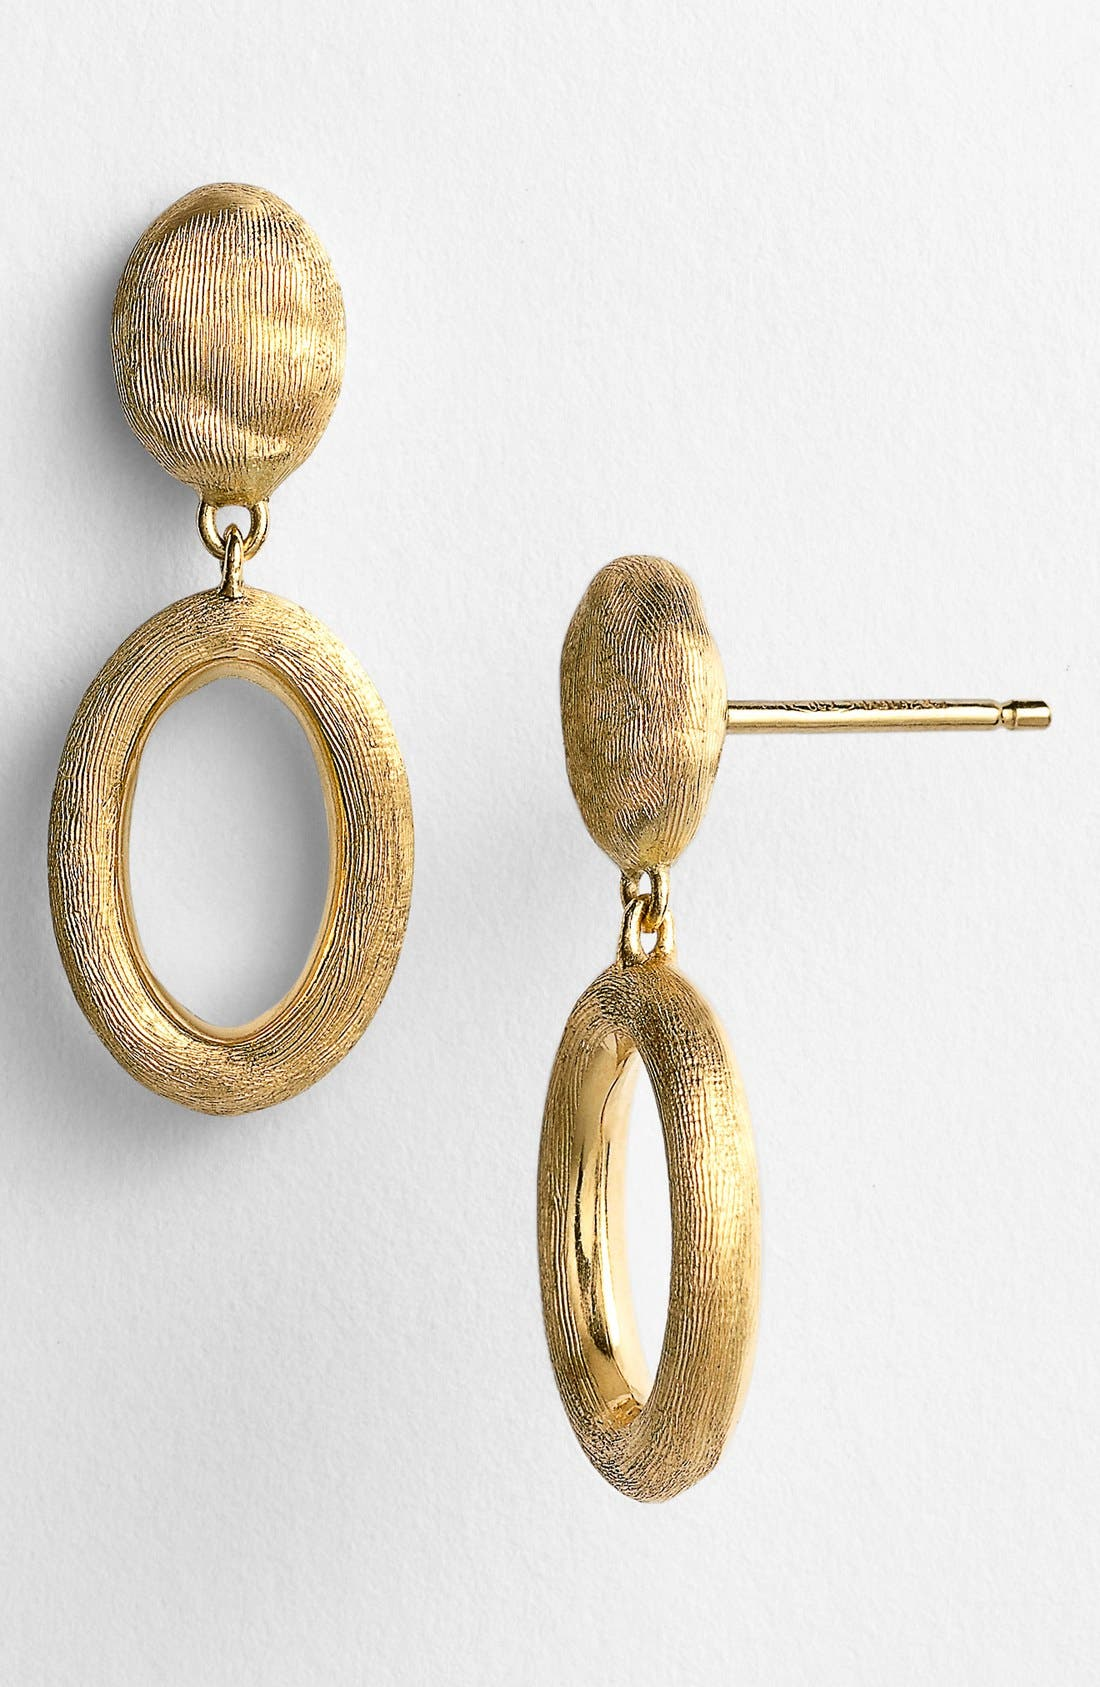 Main Image - Marco Bicego 'Siviglia' Drop Earrings